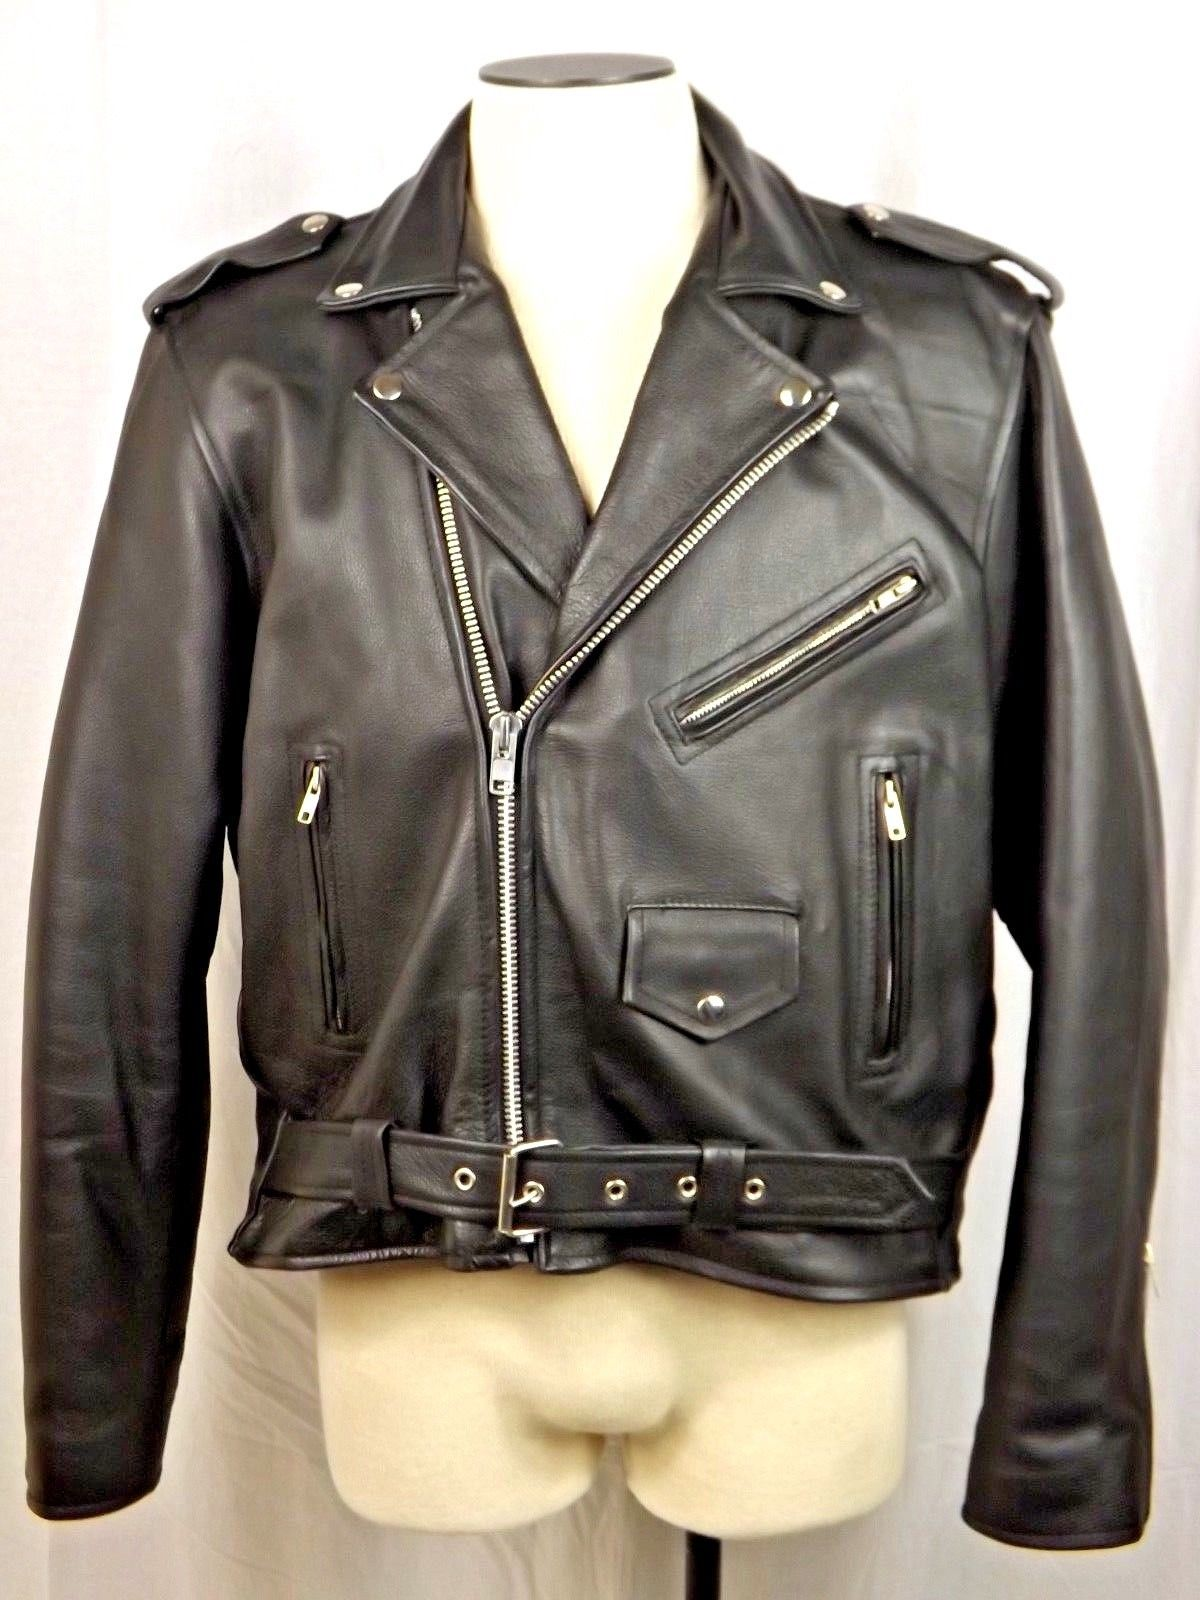 NEW American Made Naked Cowhide Leather Motorcycle Jacket Biker Brando Size 50 - $299.00